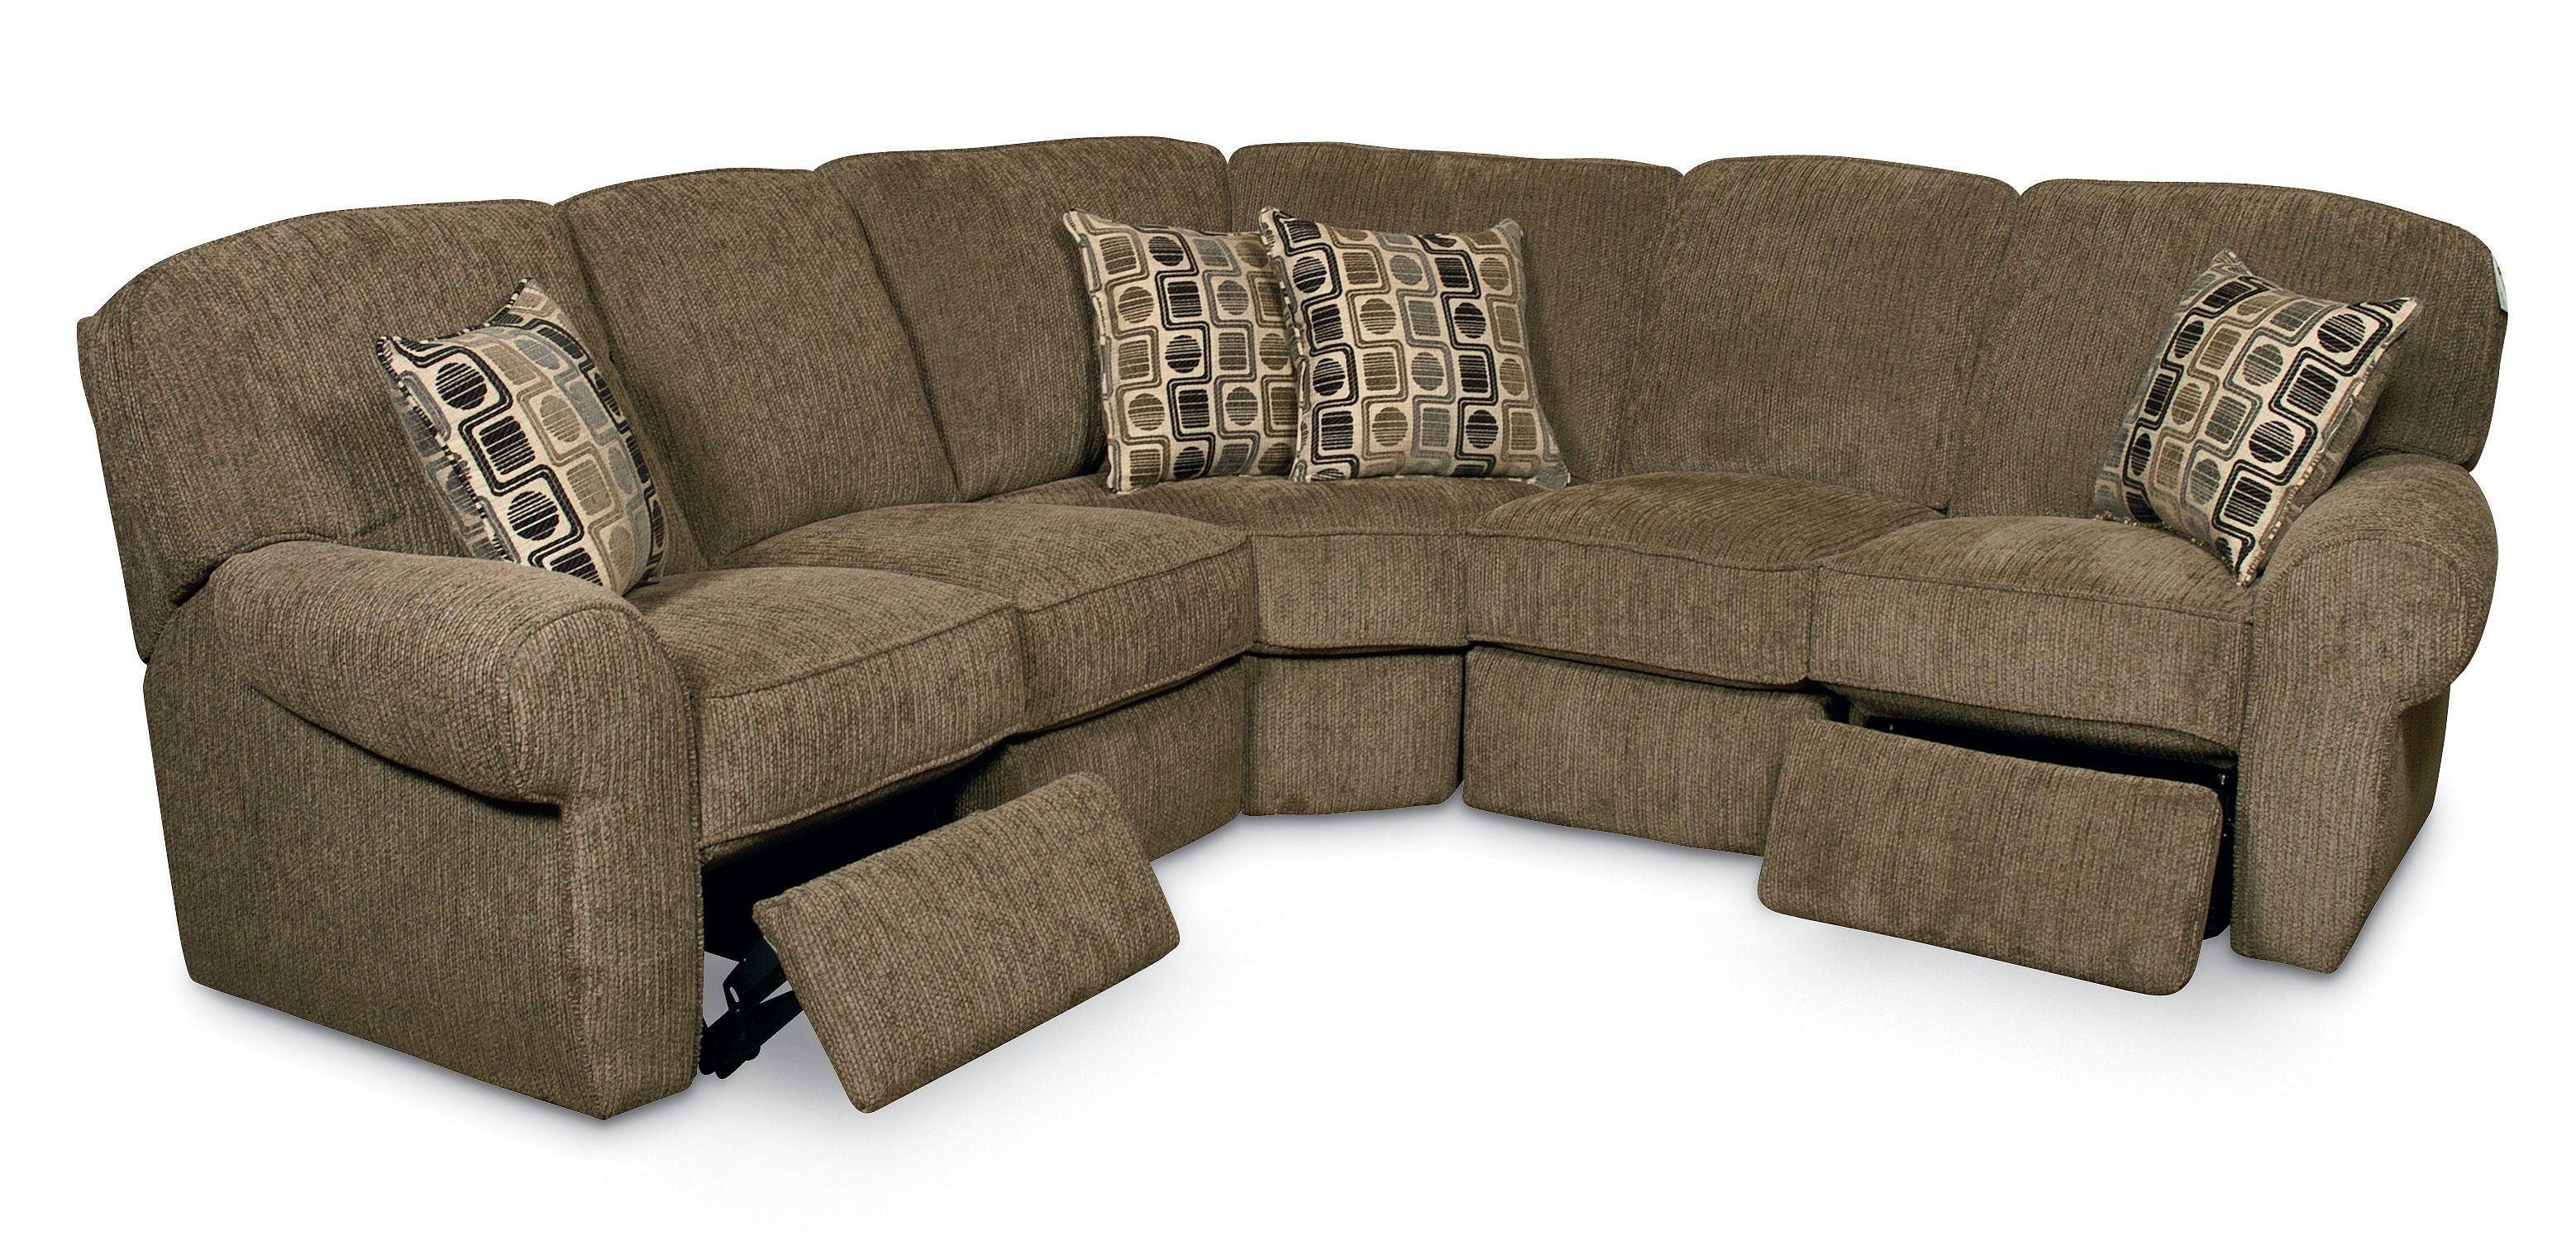 Lane Furniture Megan Collection features 4 piece reclining